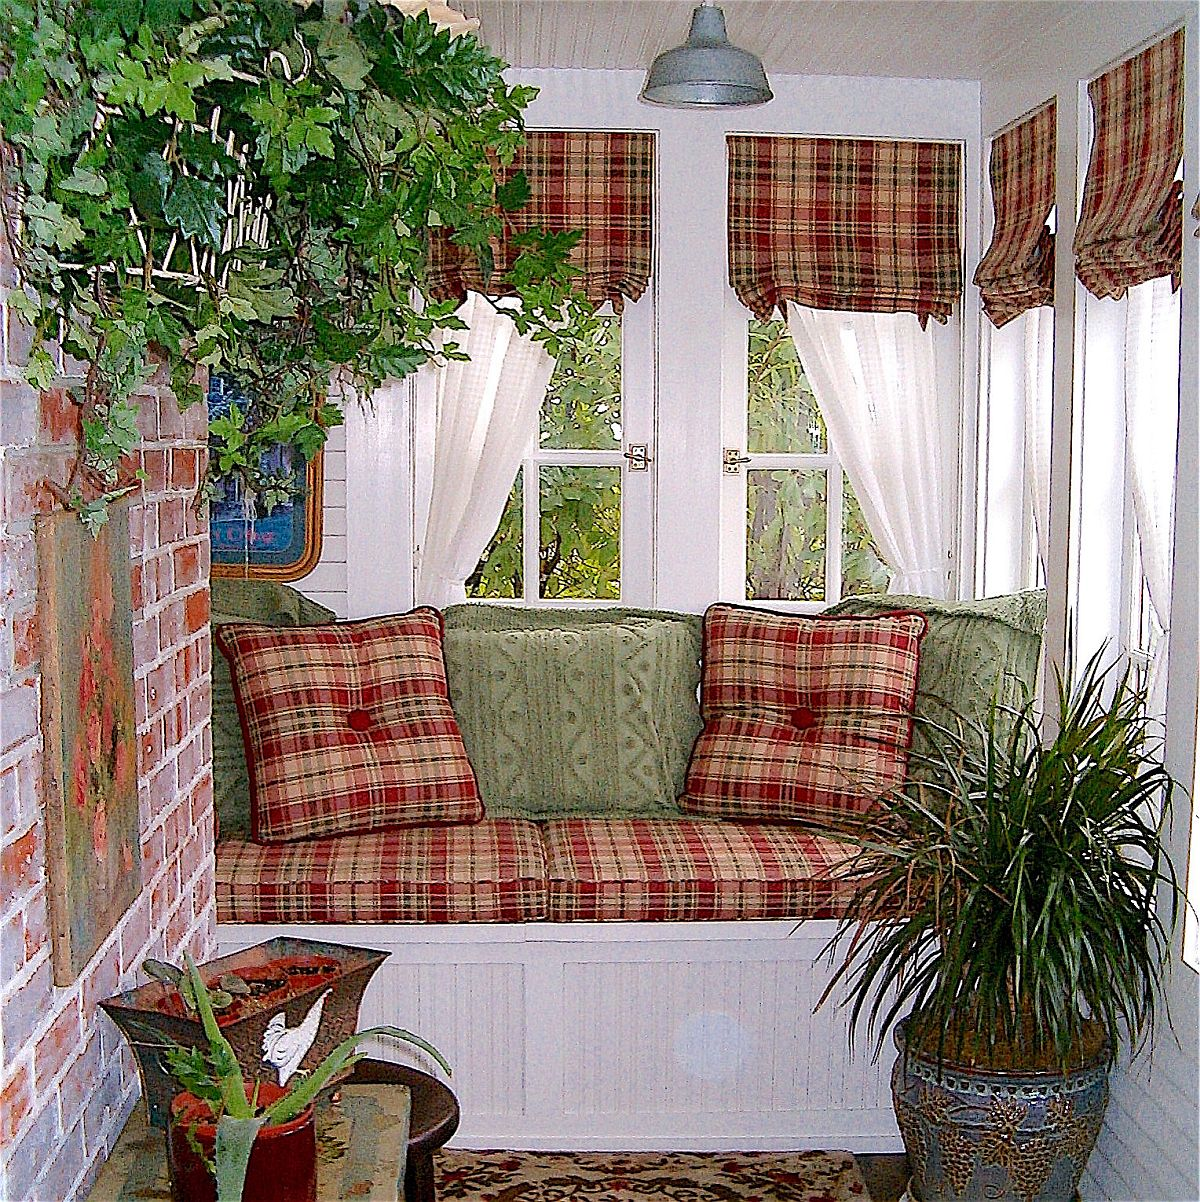 Textiles with plaid pattern add both color and authentic farmhouse appeal to the small sunroom